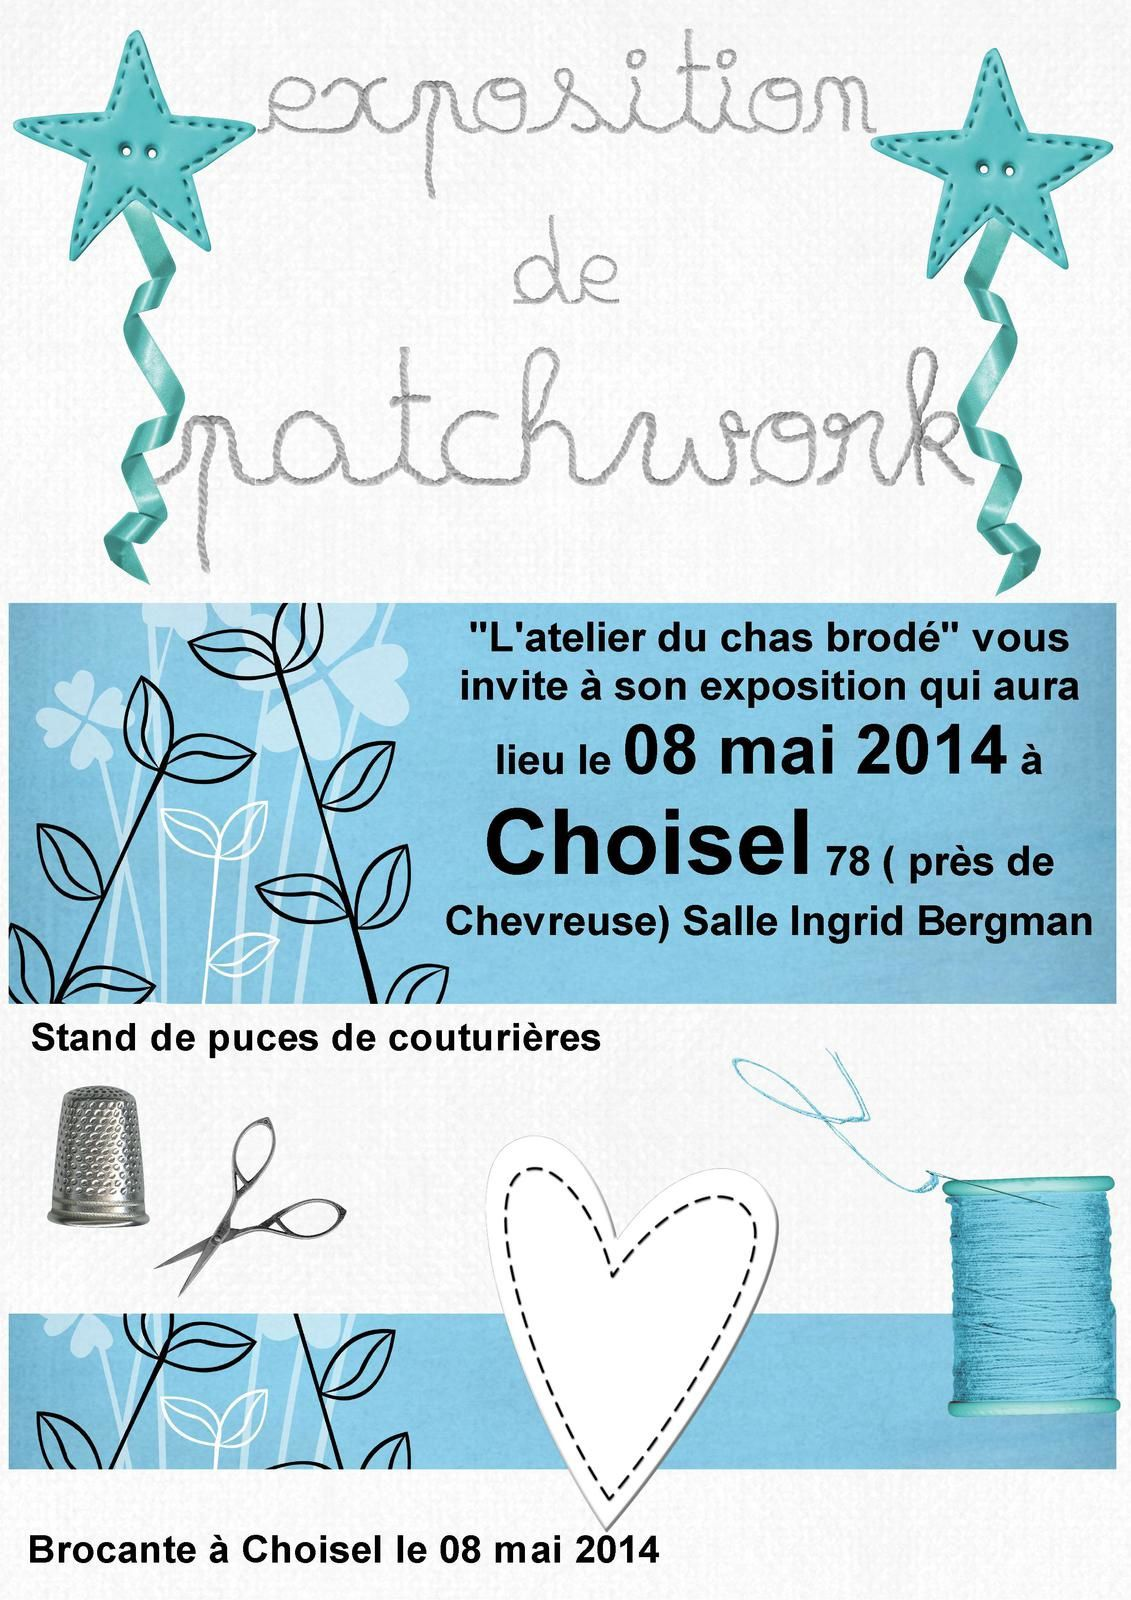 Exposition de Patchwork à Choisel